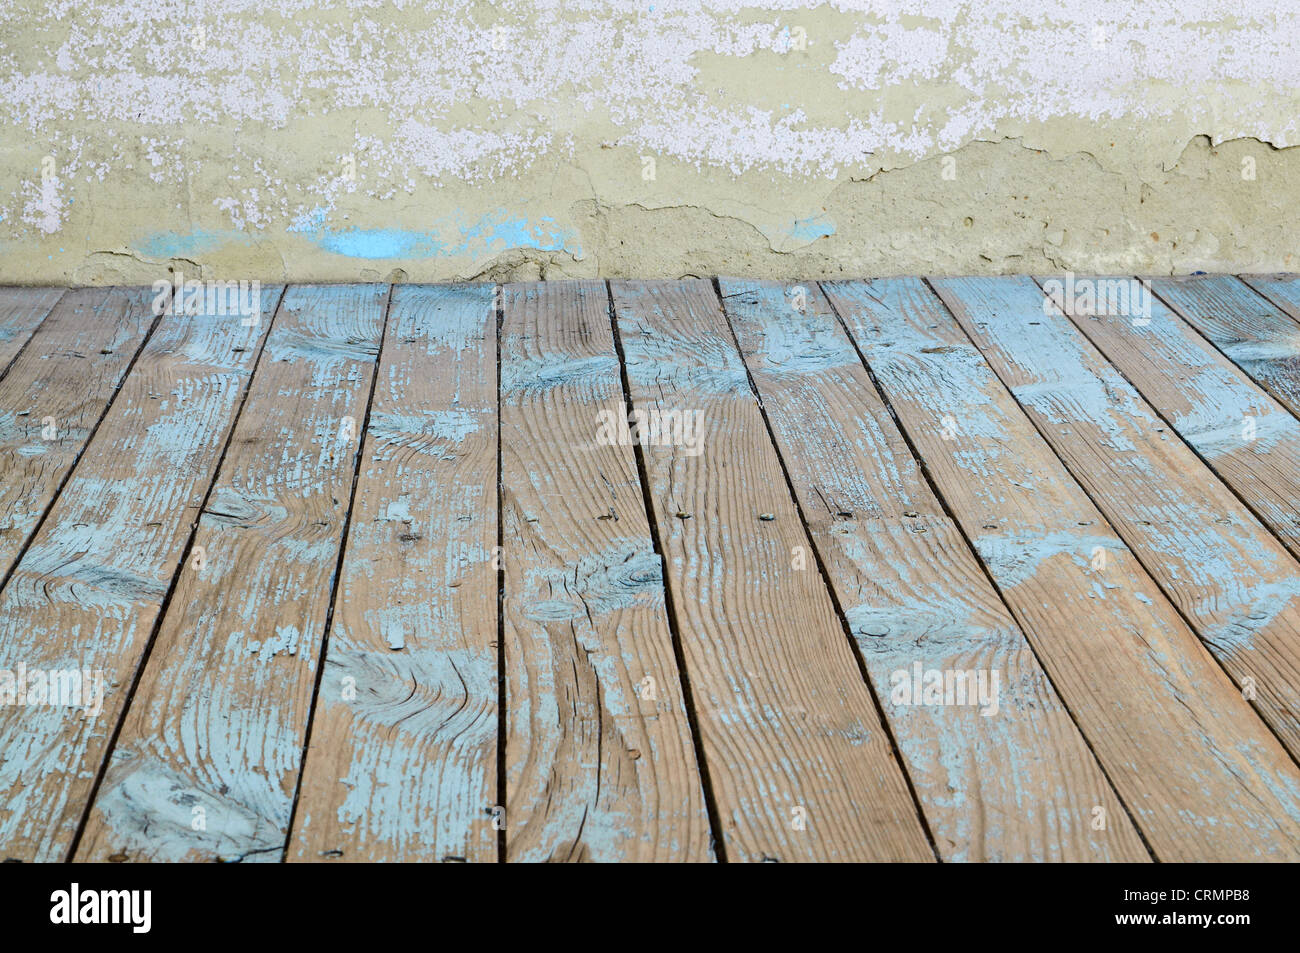 Grunge Interior Wall and Floor - Stock Image